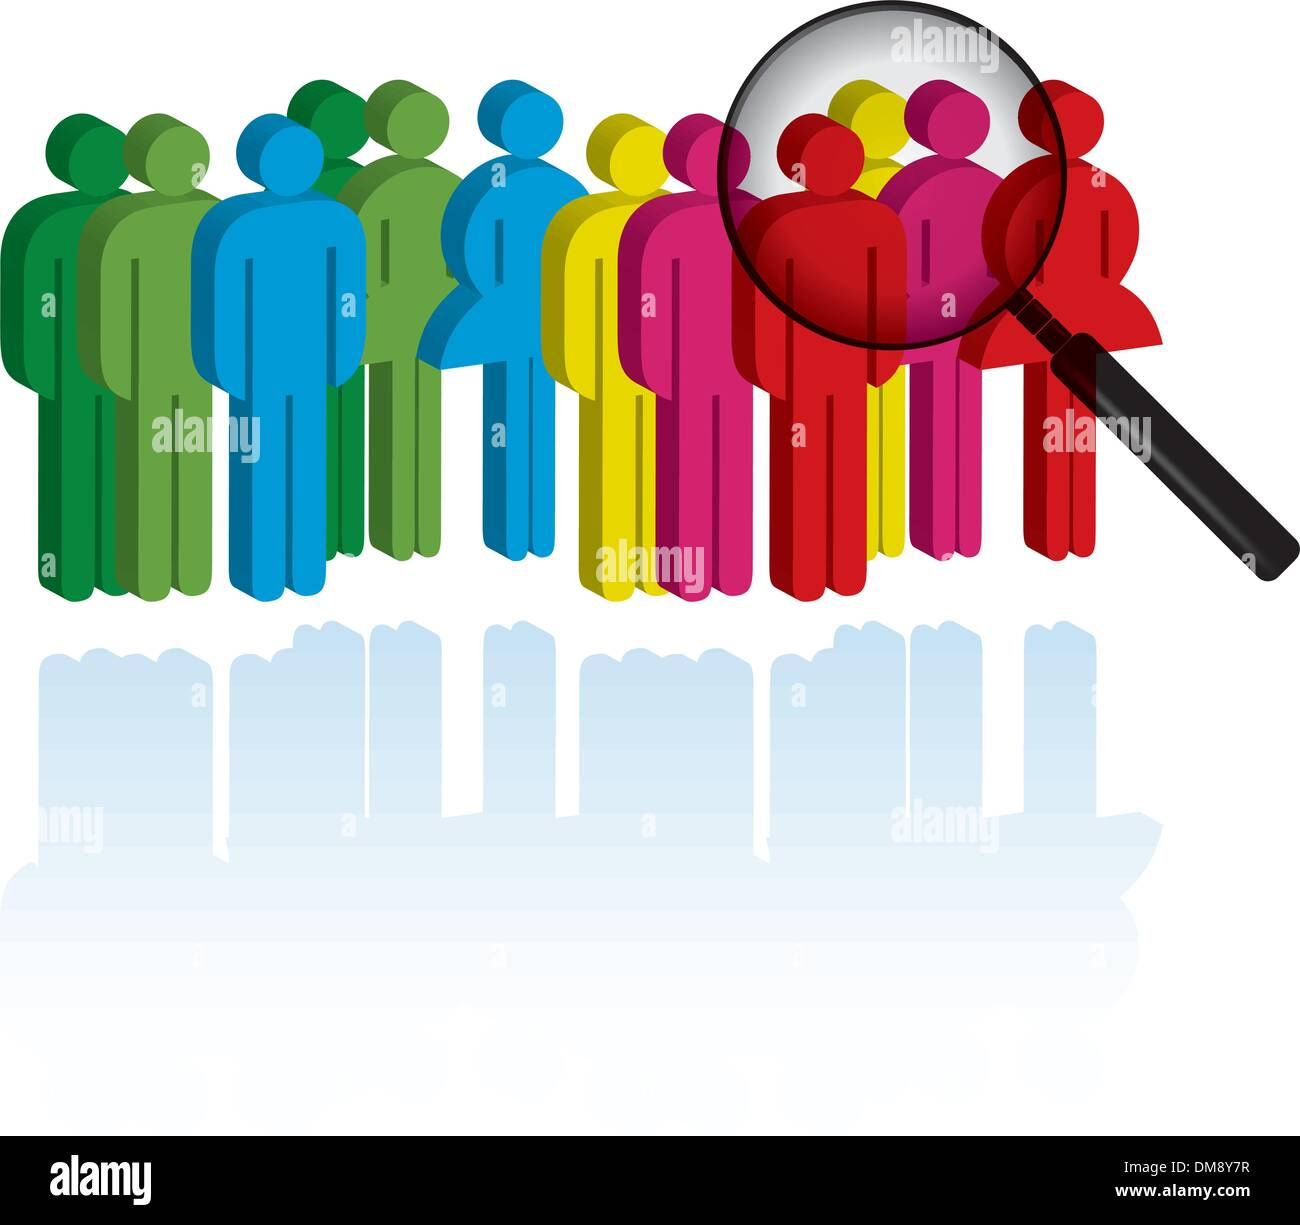 Search colleagues - Stock Vector